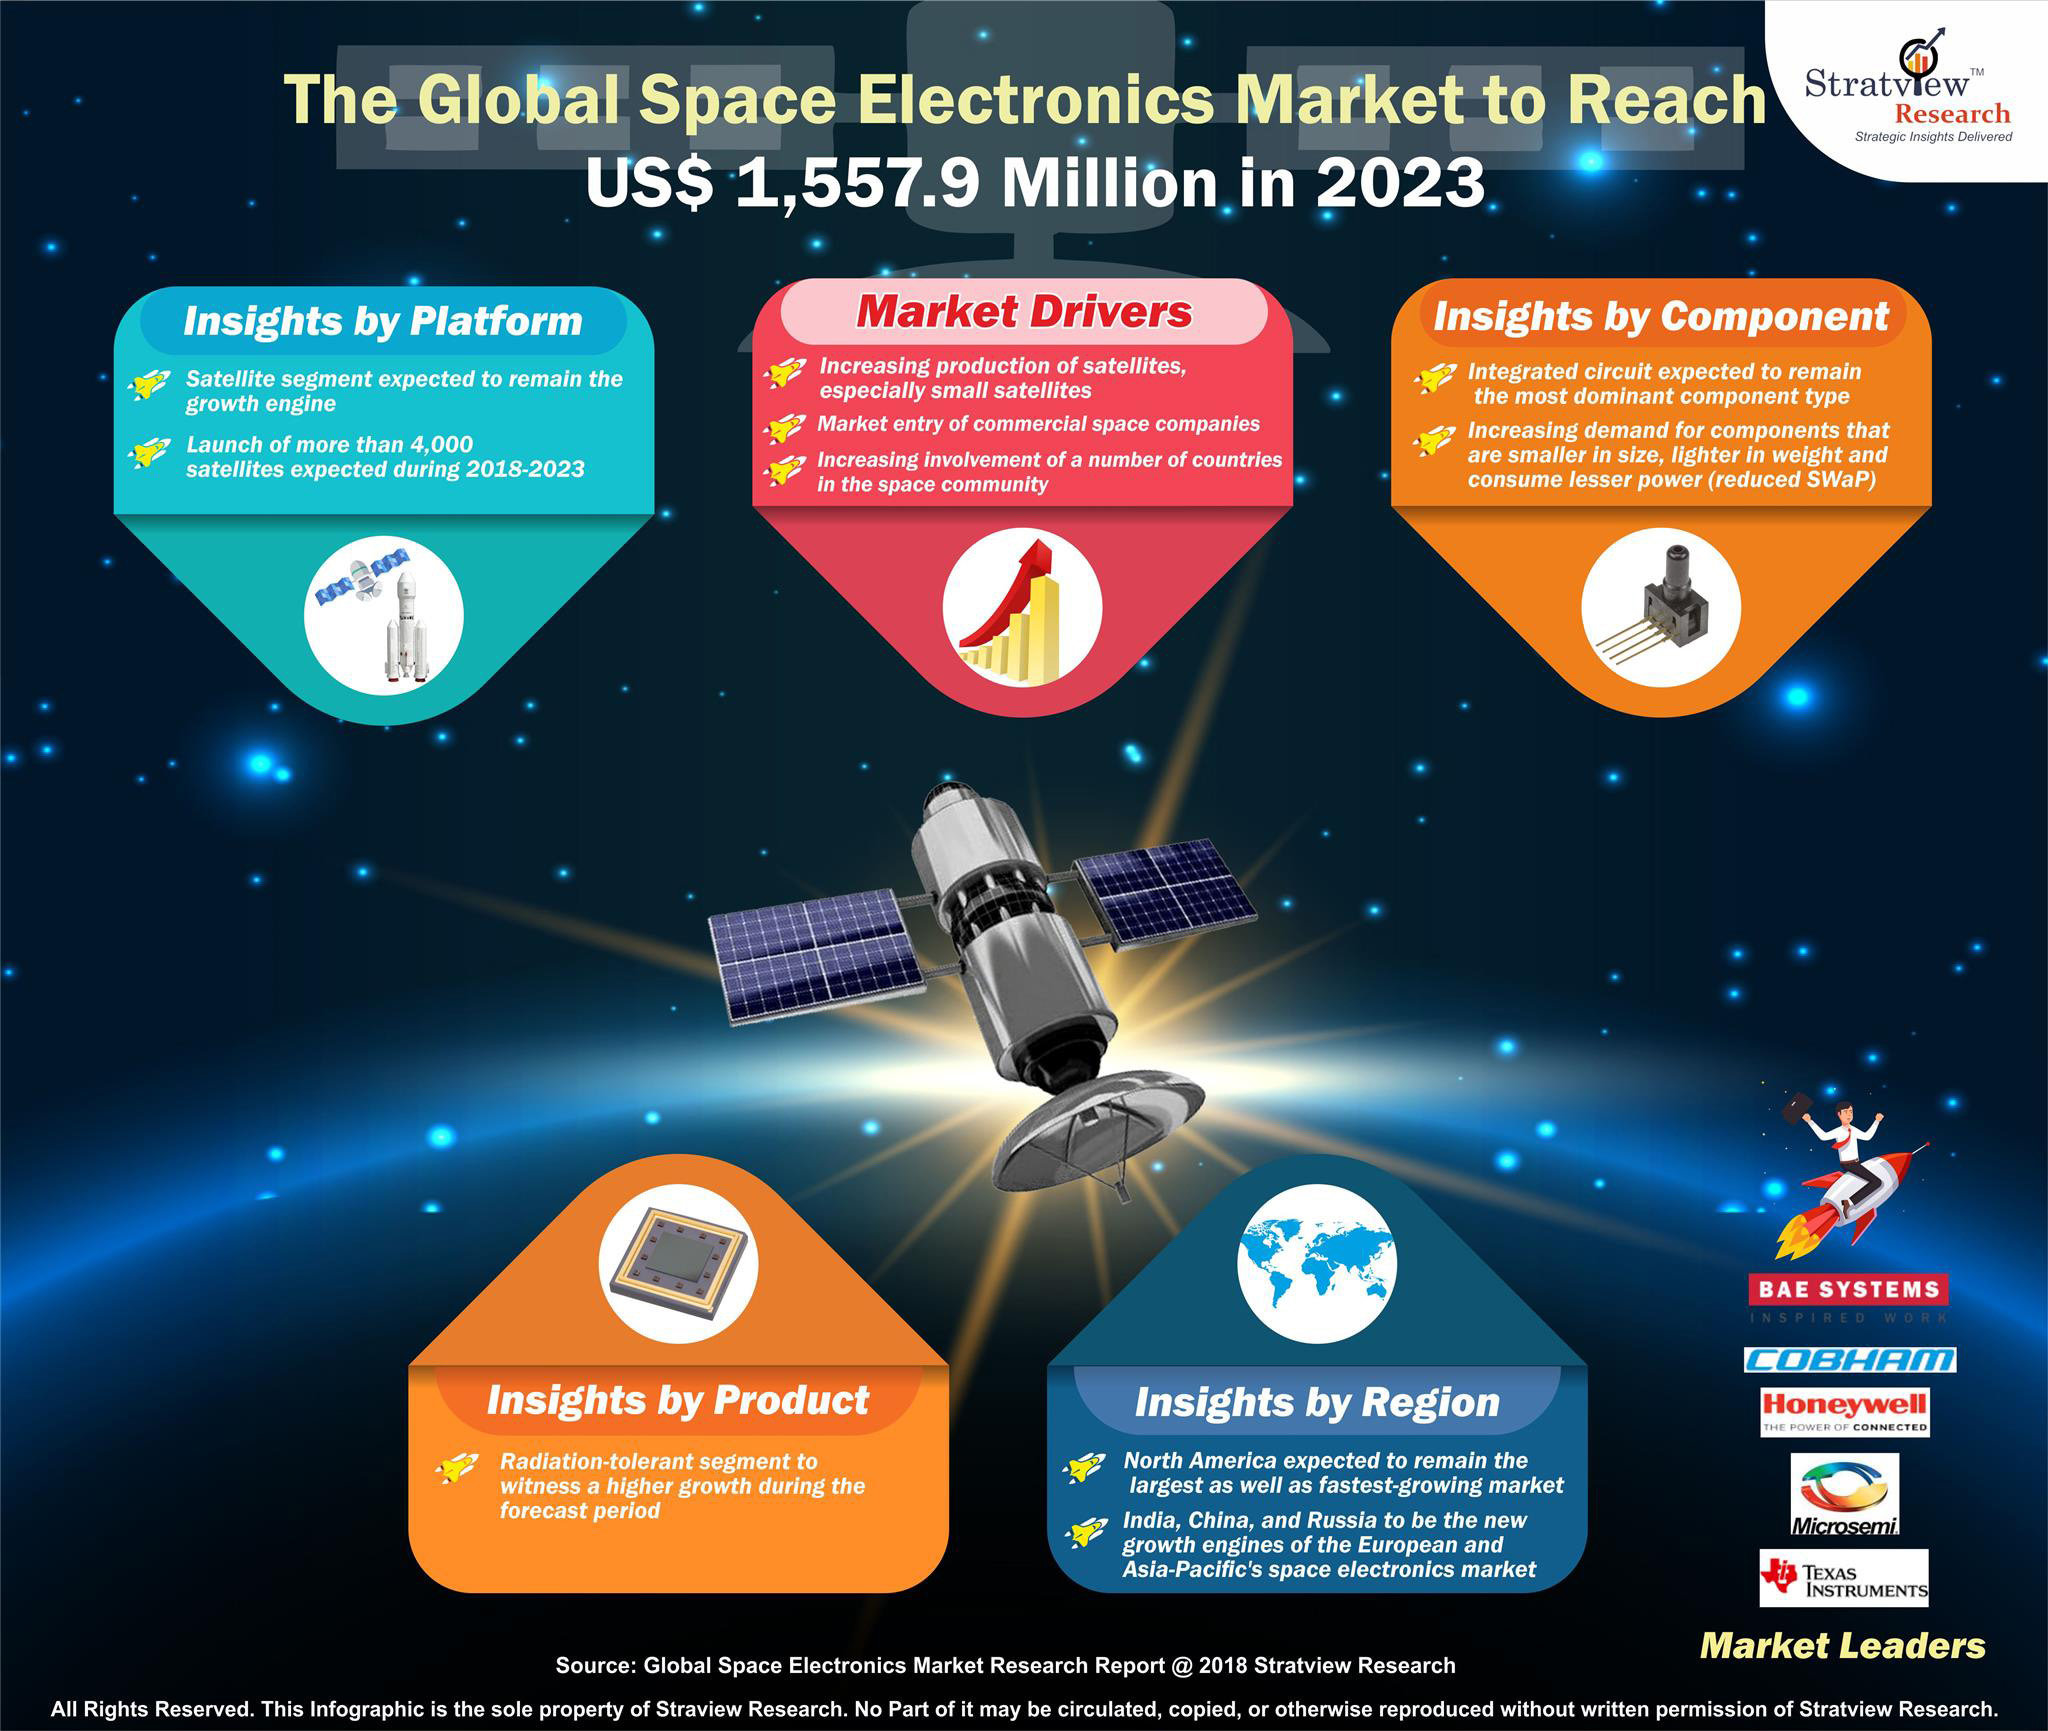 Space Electronics Market - Latest Trends, Forecast, and Market Analysis